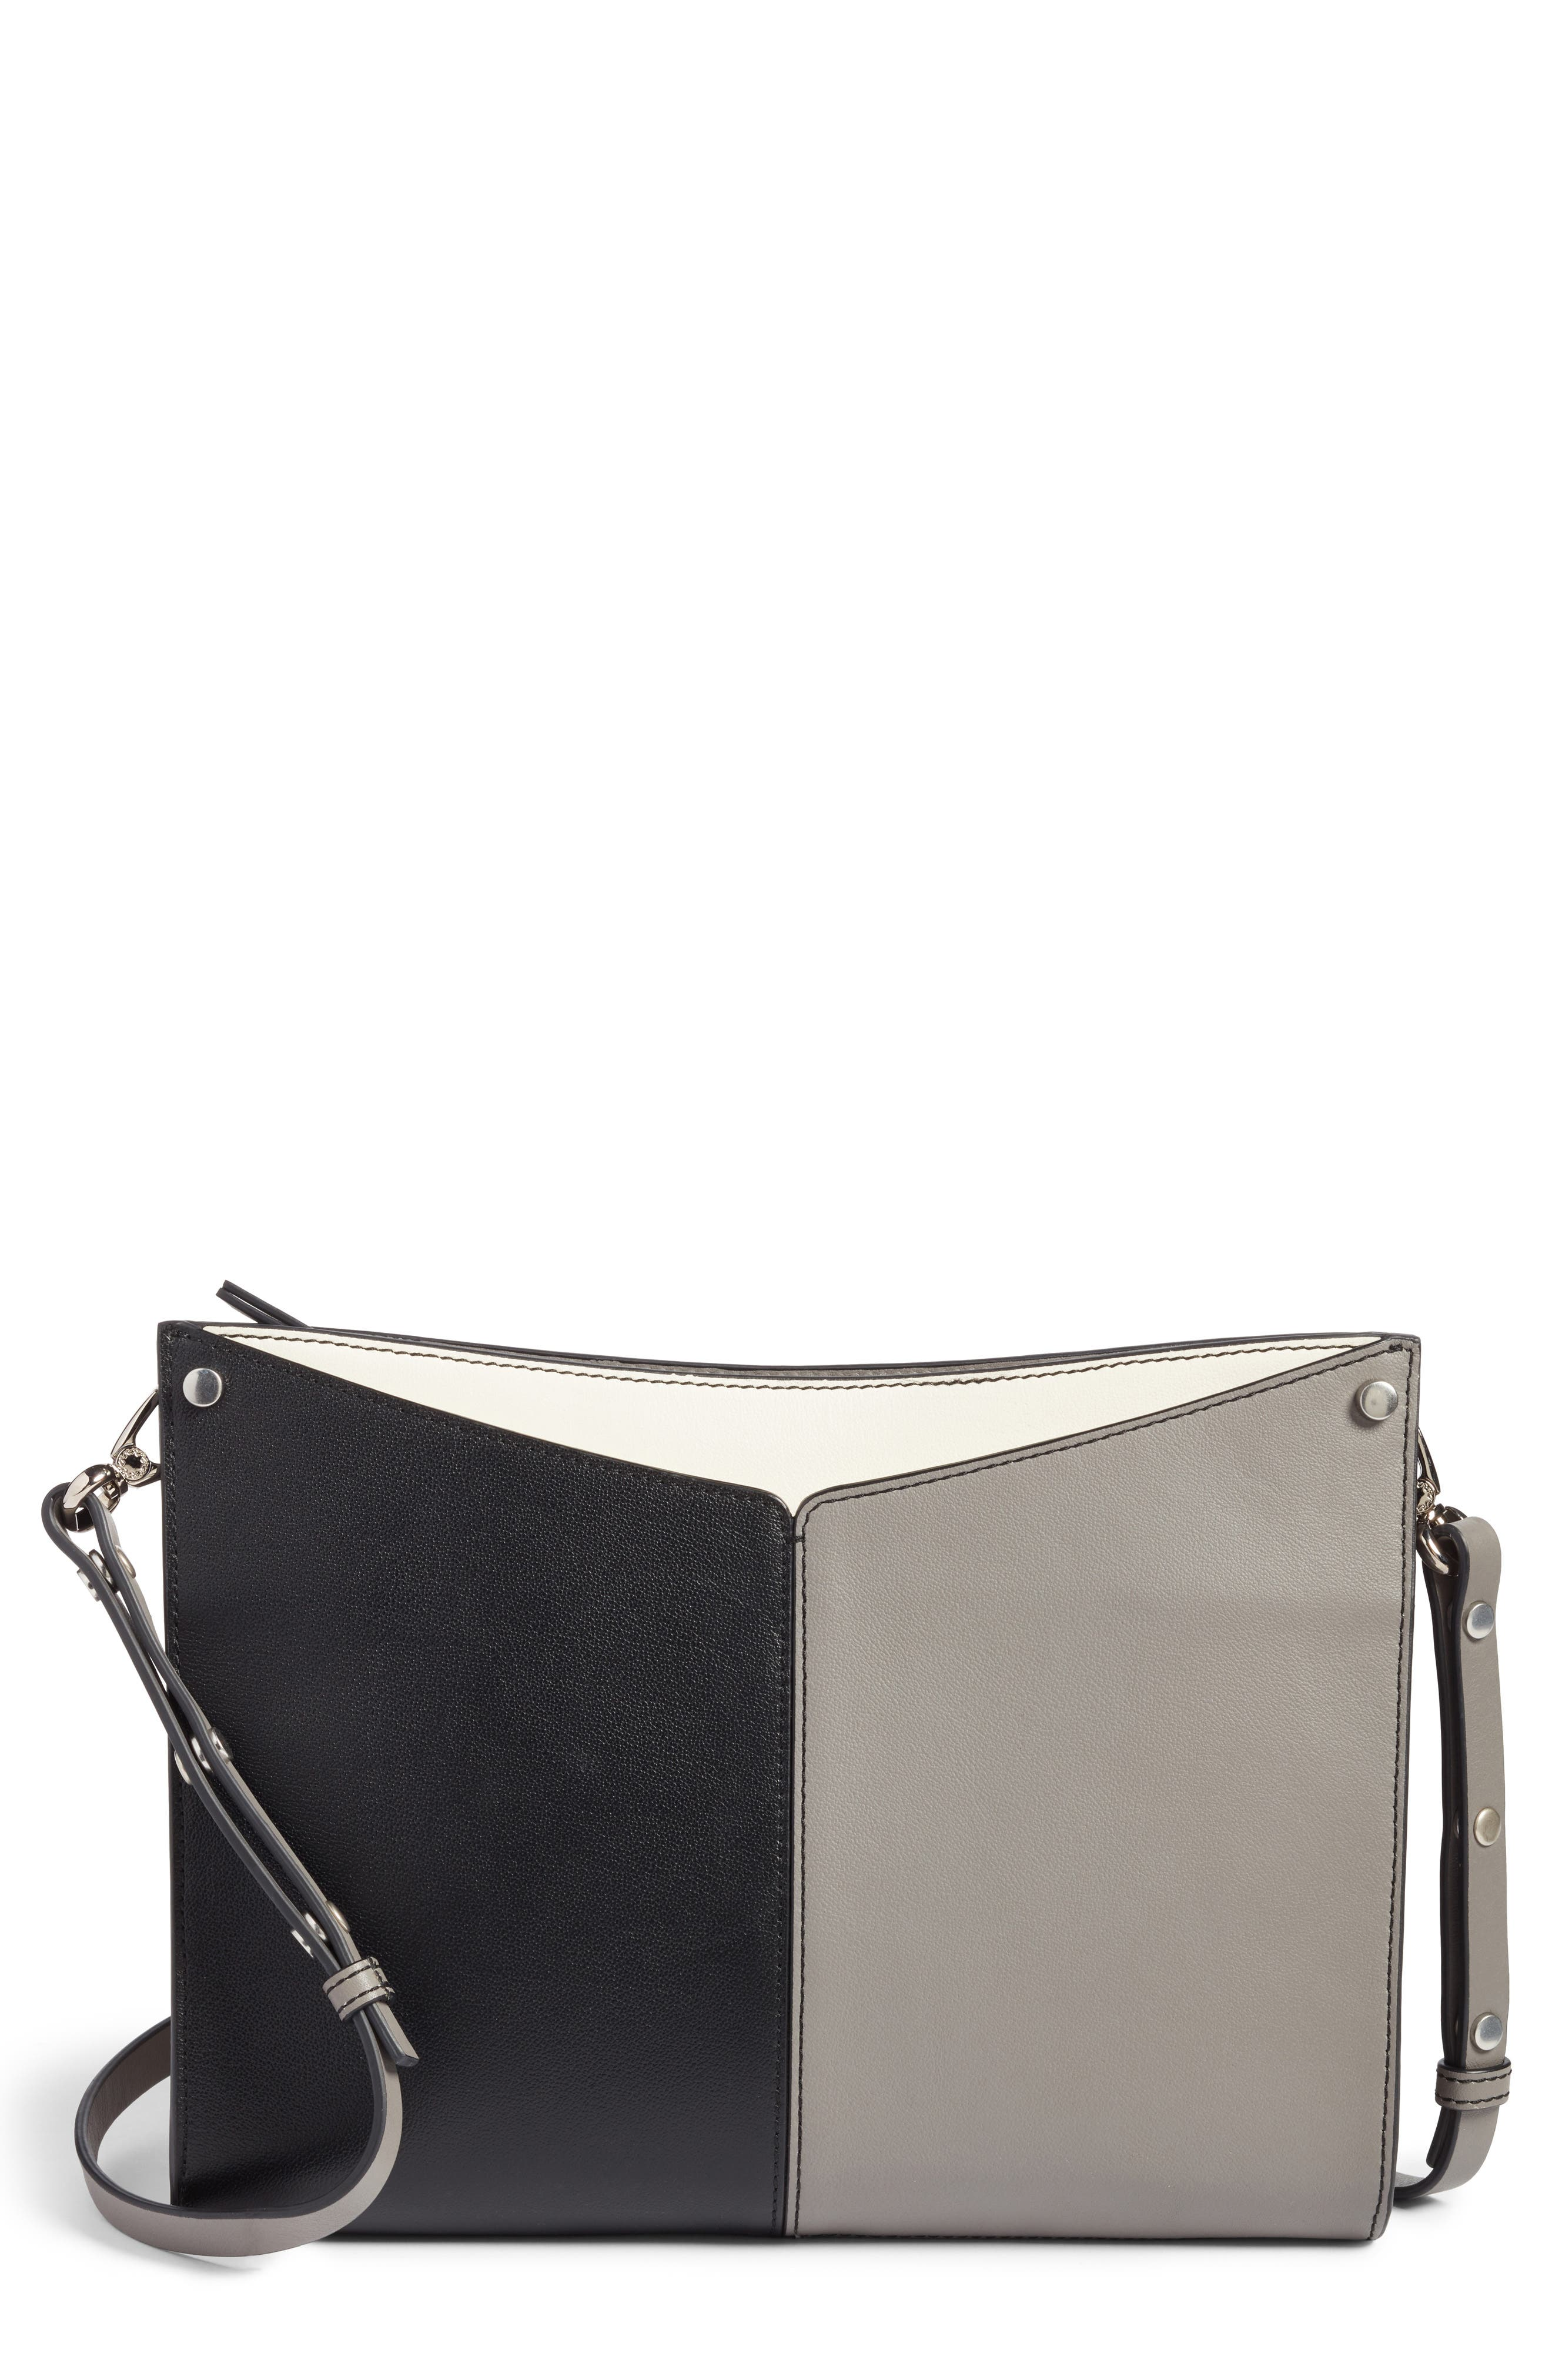 Harrison Leather Shoulder Bag,                         Main,                         color, Black Multi